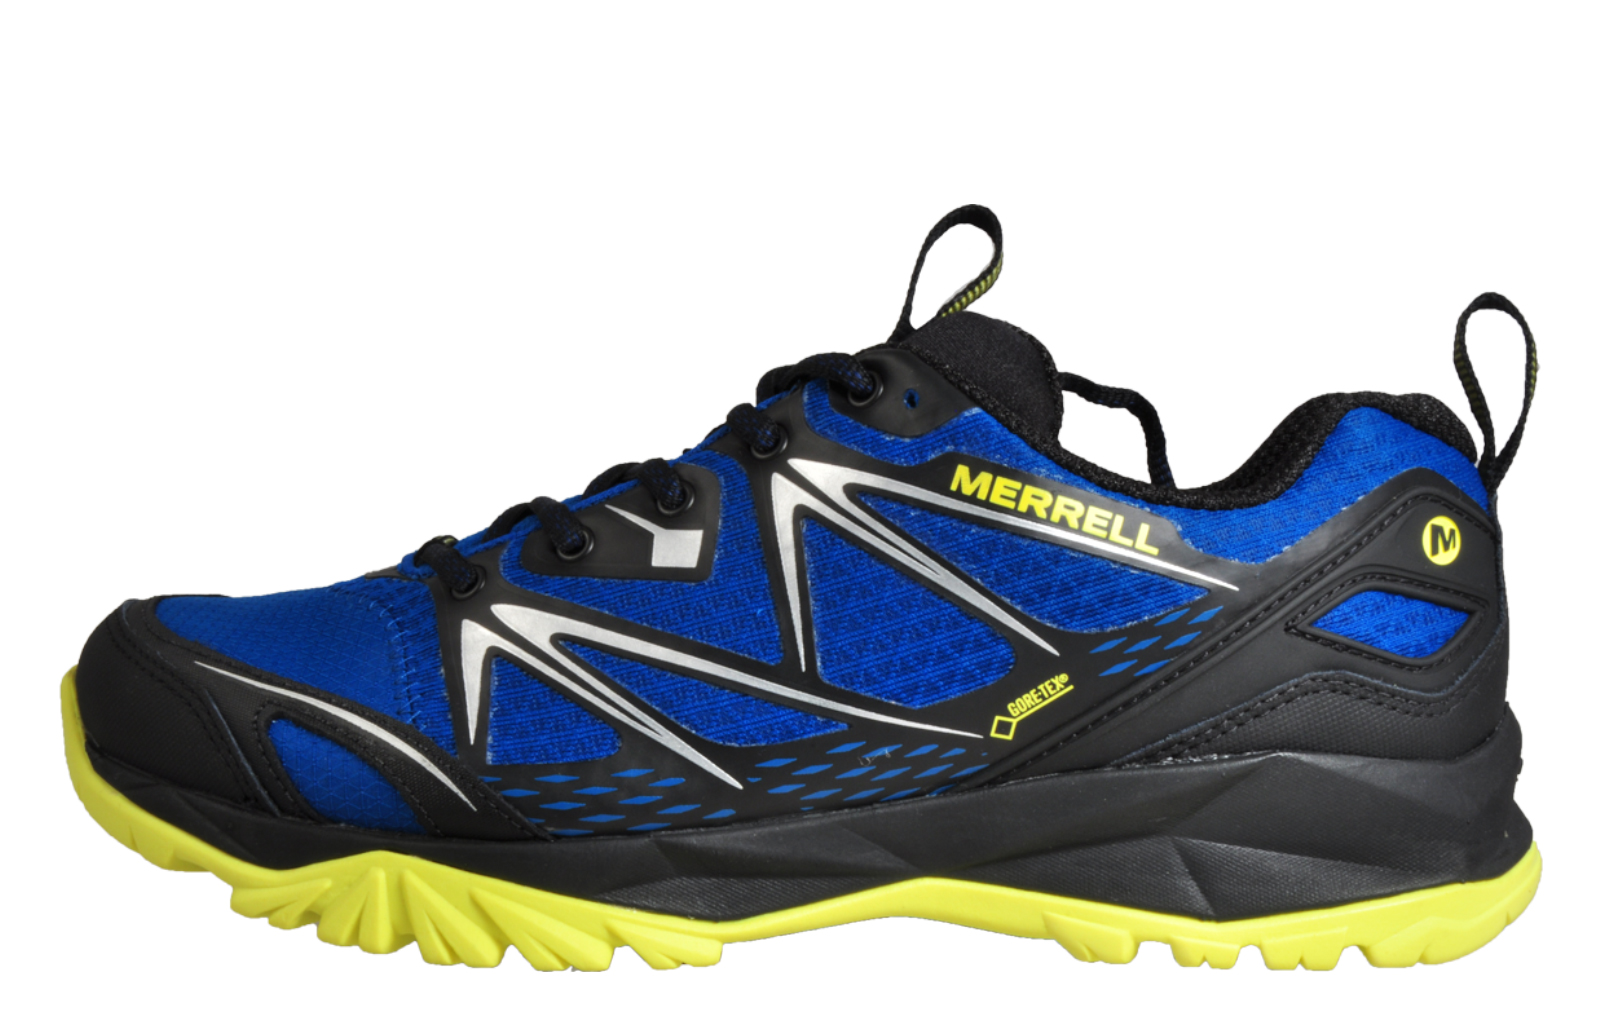 Merrell Capra Bolt GTX Gore-Tex Waterproof Mens - ML166017